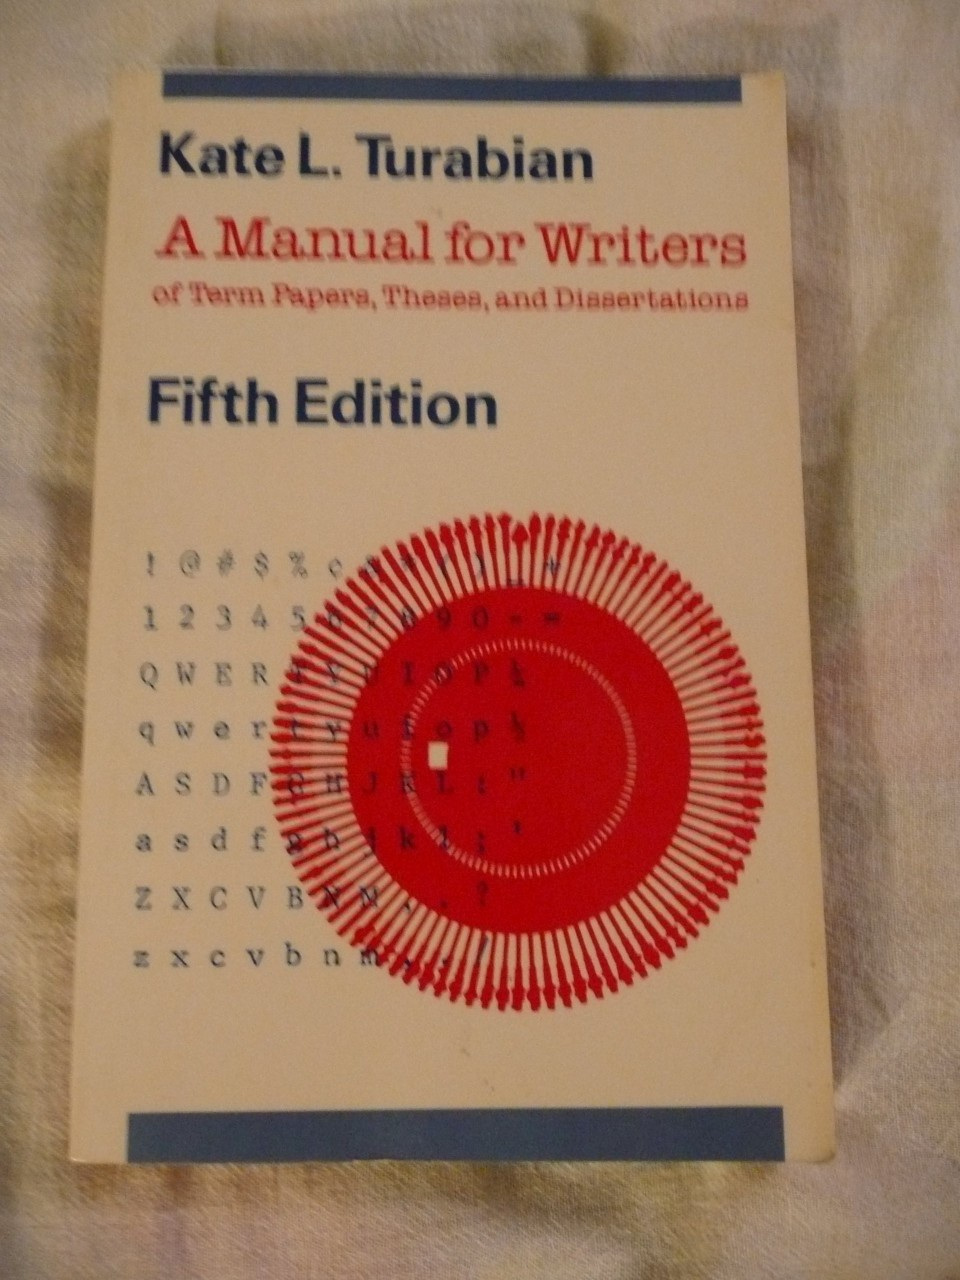 014 Manual For Writers Of Researchs Theses And Dissertations Ebook 91nltv7olql Unbelievable A Research Papers 960